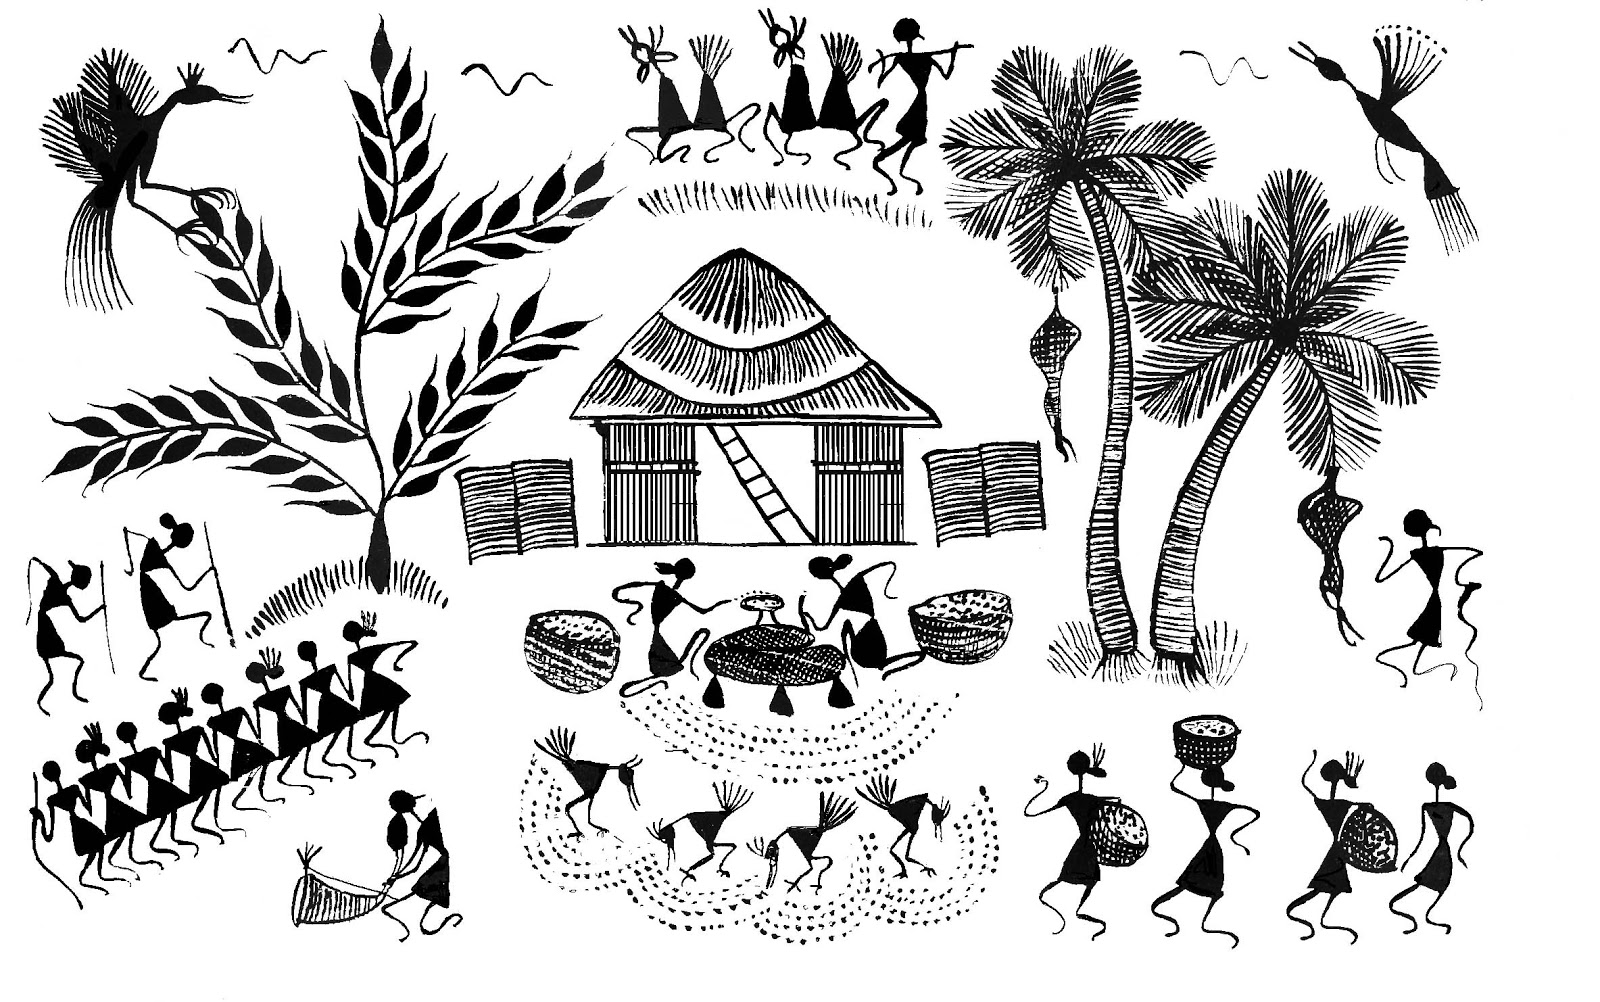 Stock Pictures: Warli Art - Sketches and Drawings and Designs